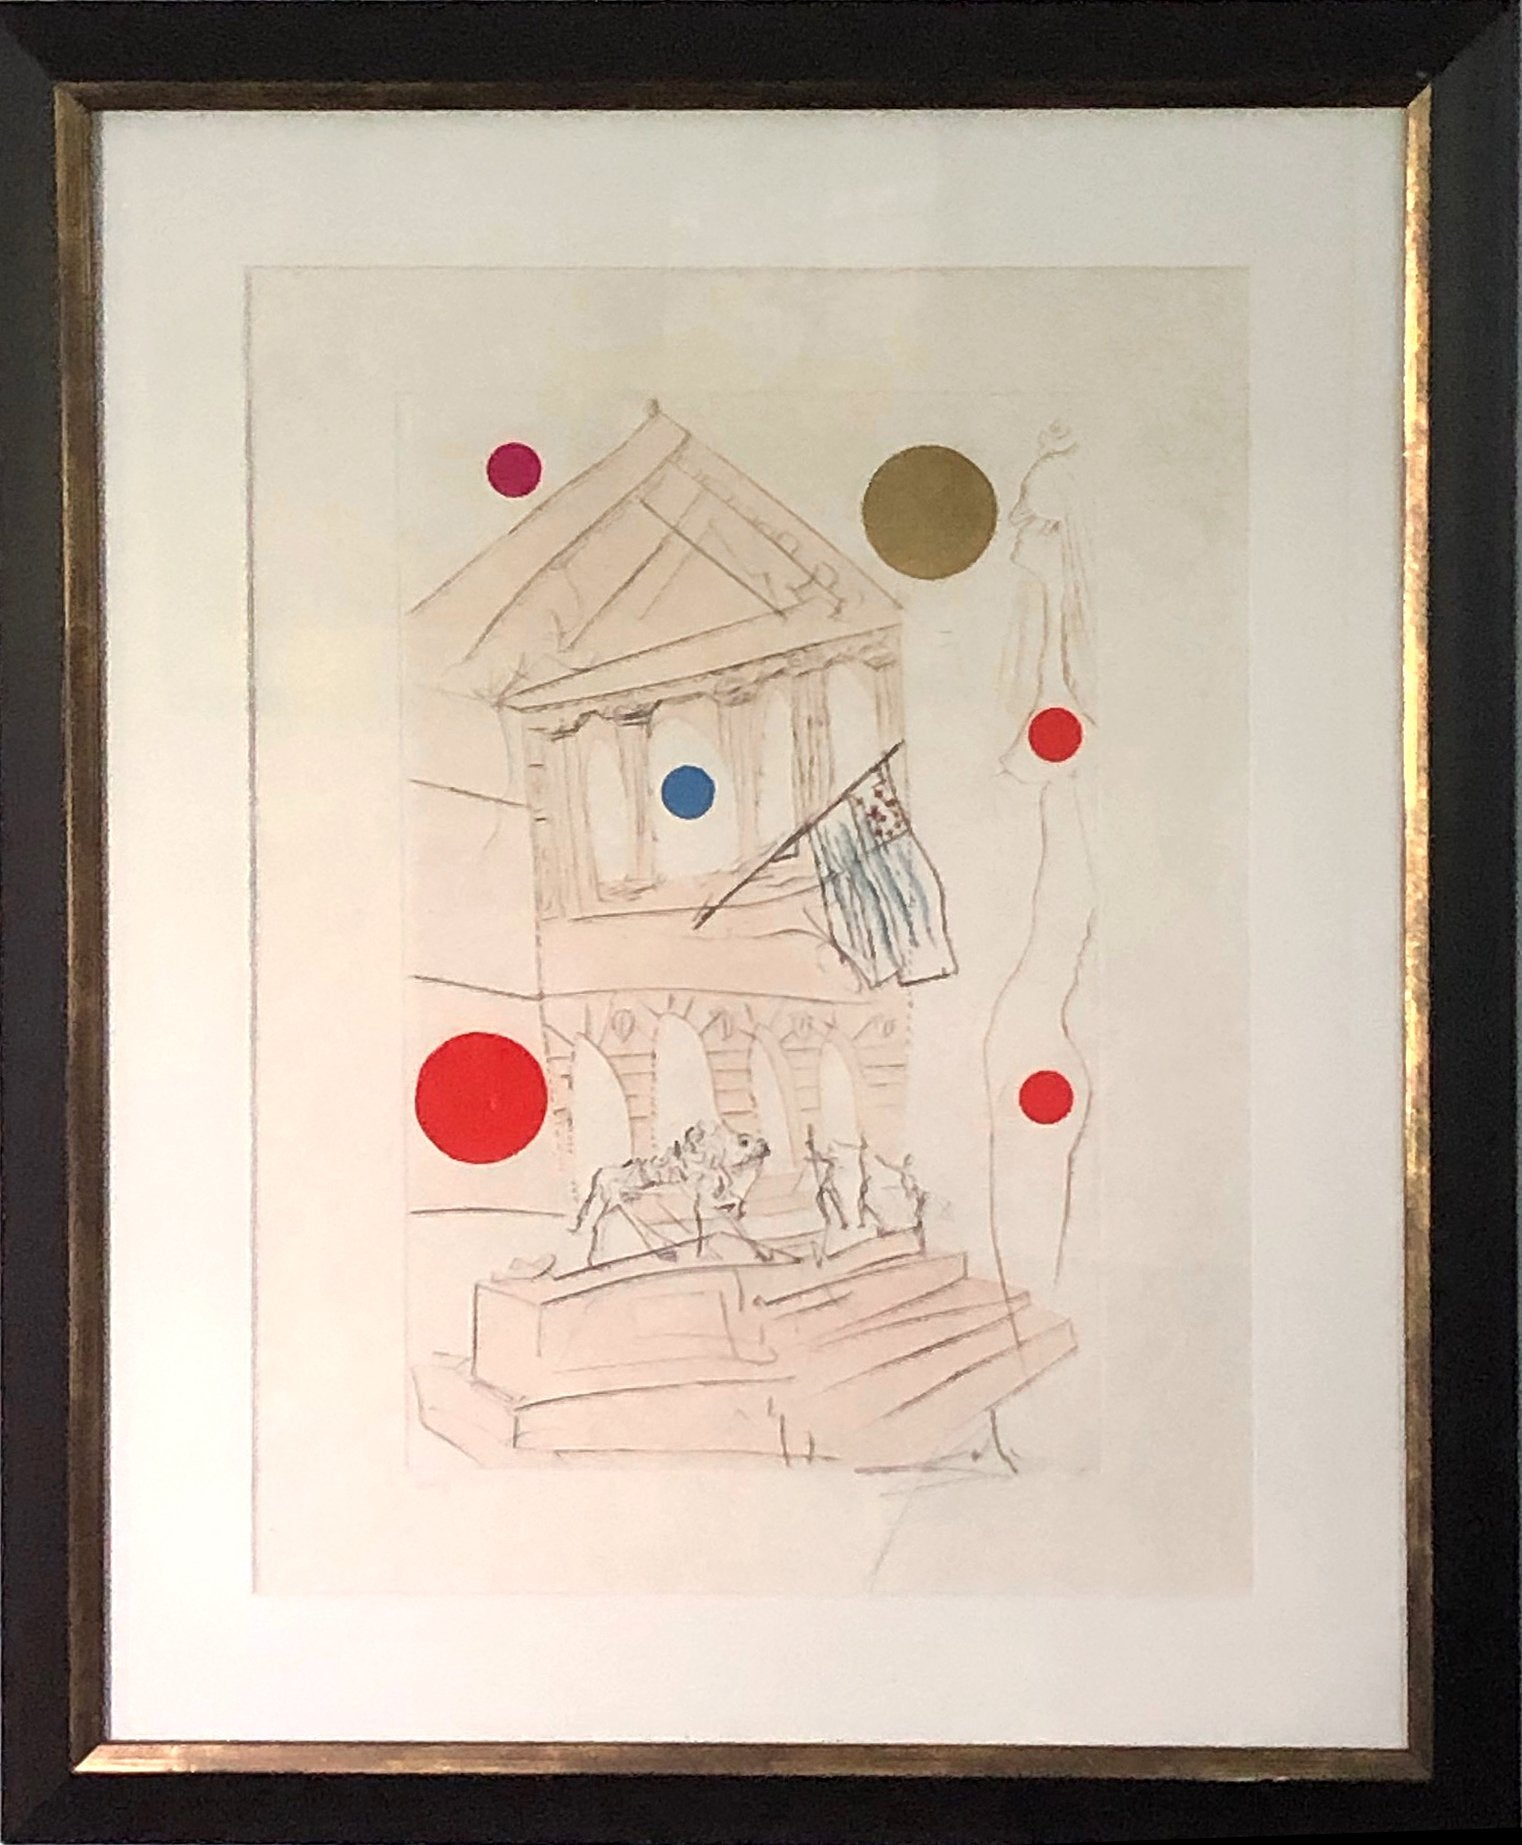 Salvador Dalí, The Art Institute Etching - RoGallery